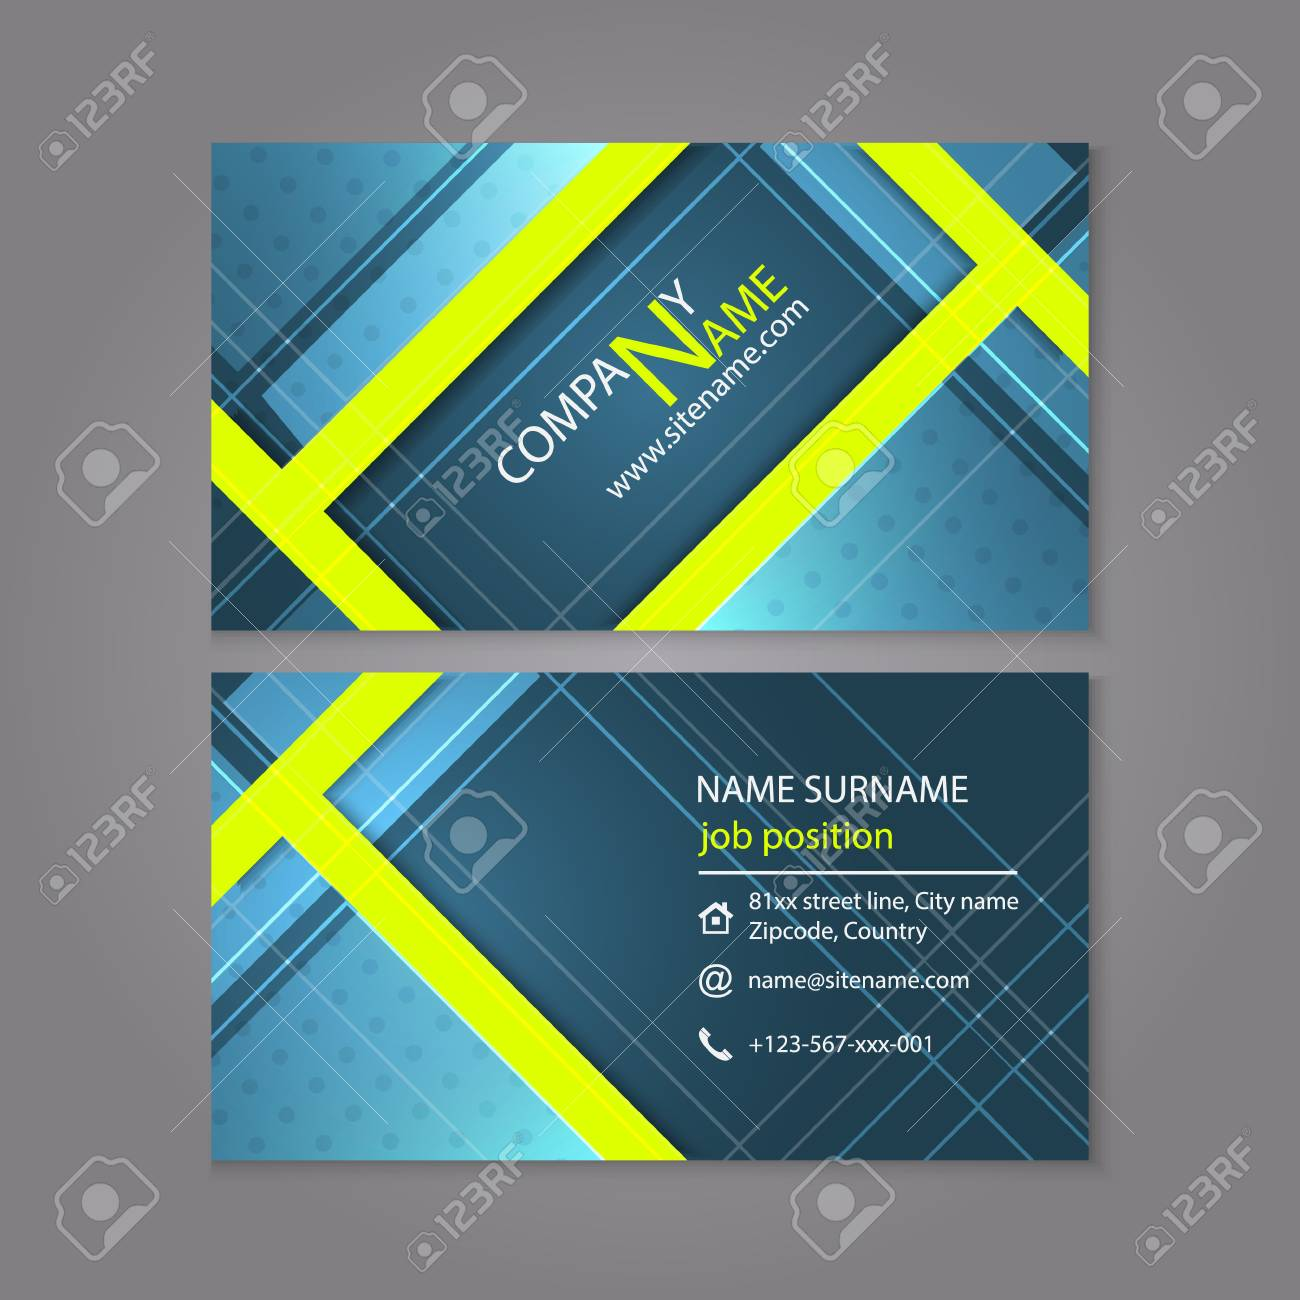 Professional business card template design or visiting card set professional business card template design or visiting card set stock vector 44166184 cheaphphosting Image collections